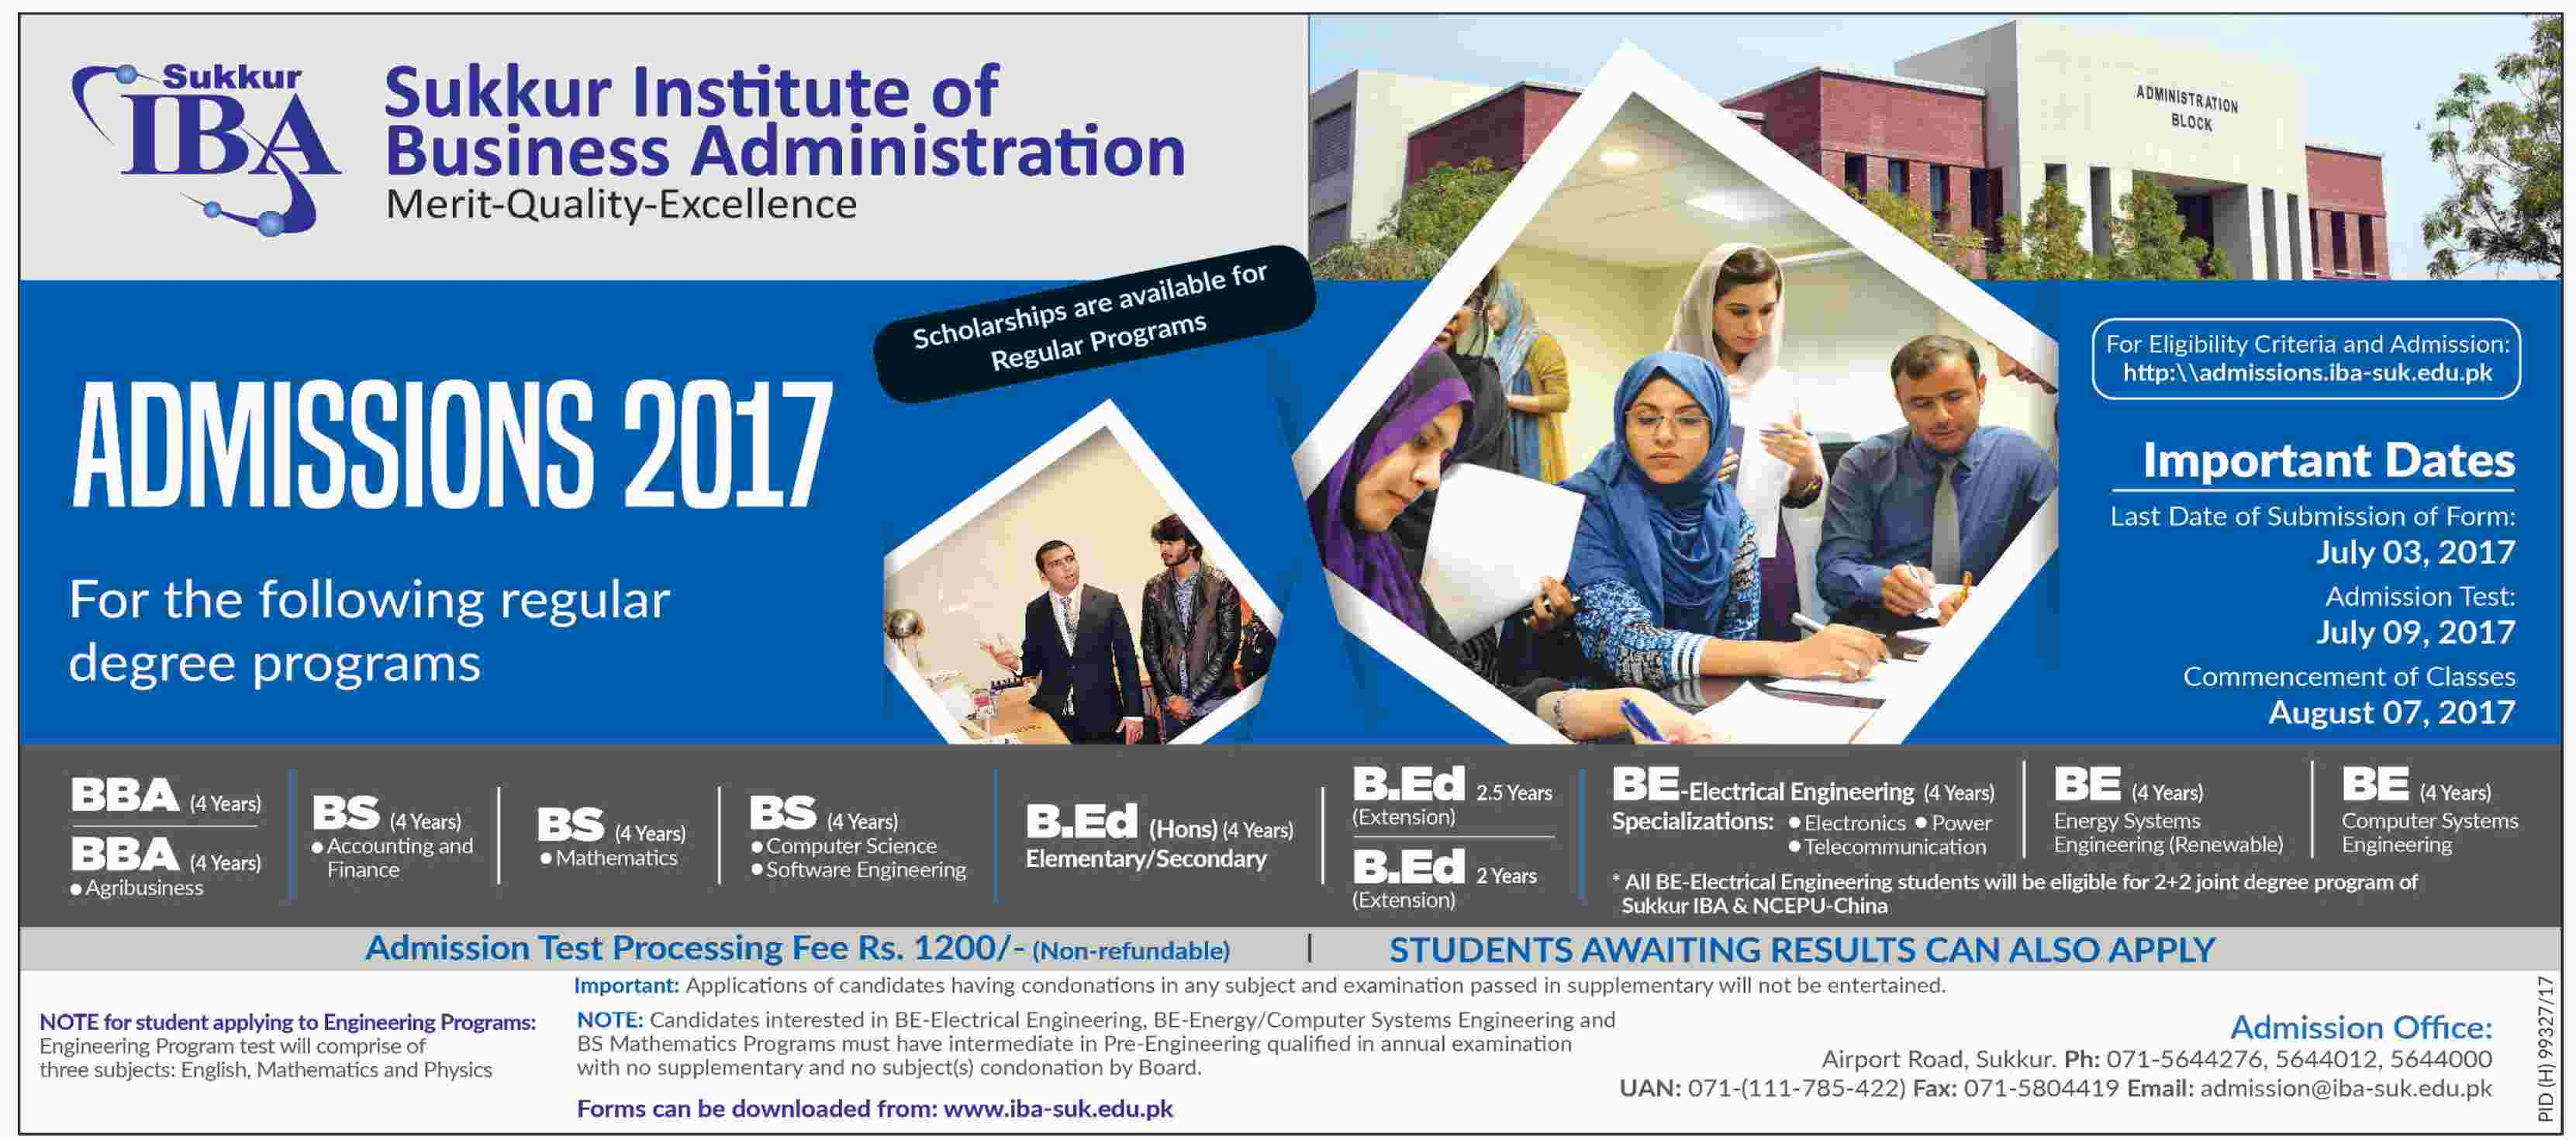 Sukkur Institute of Business Administration –  Admissions Open 2017